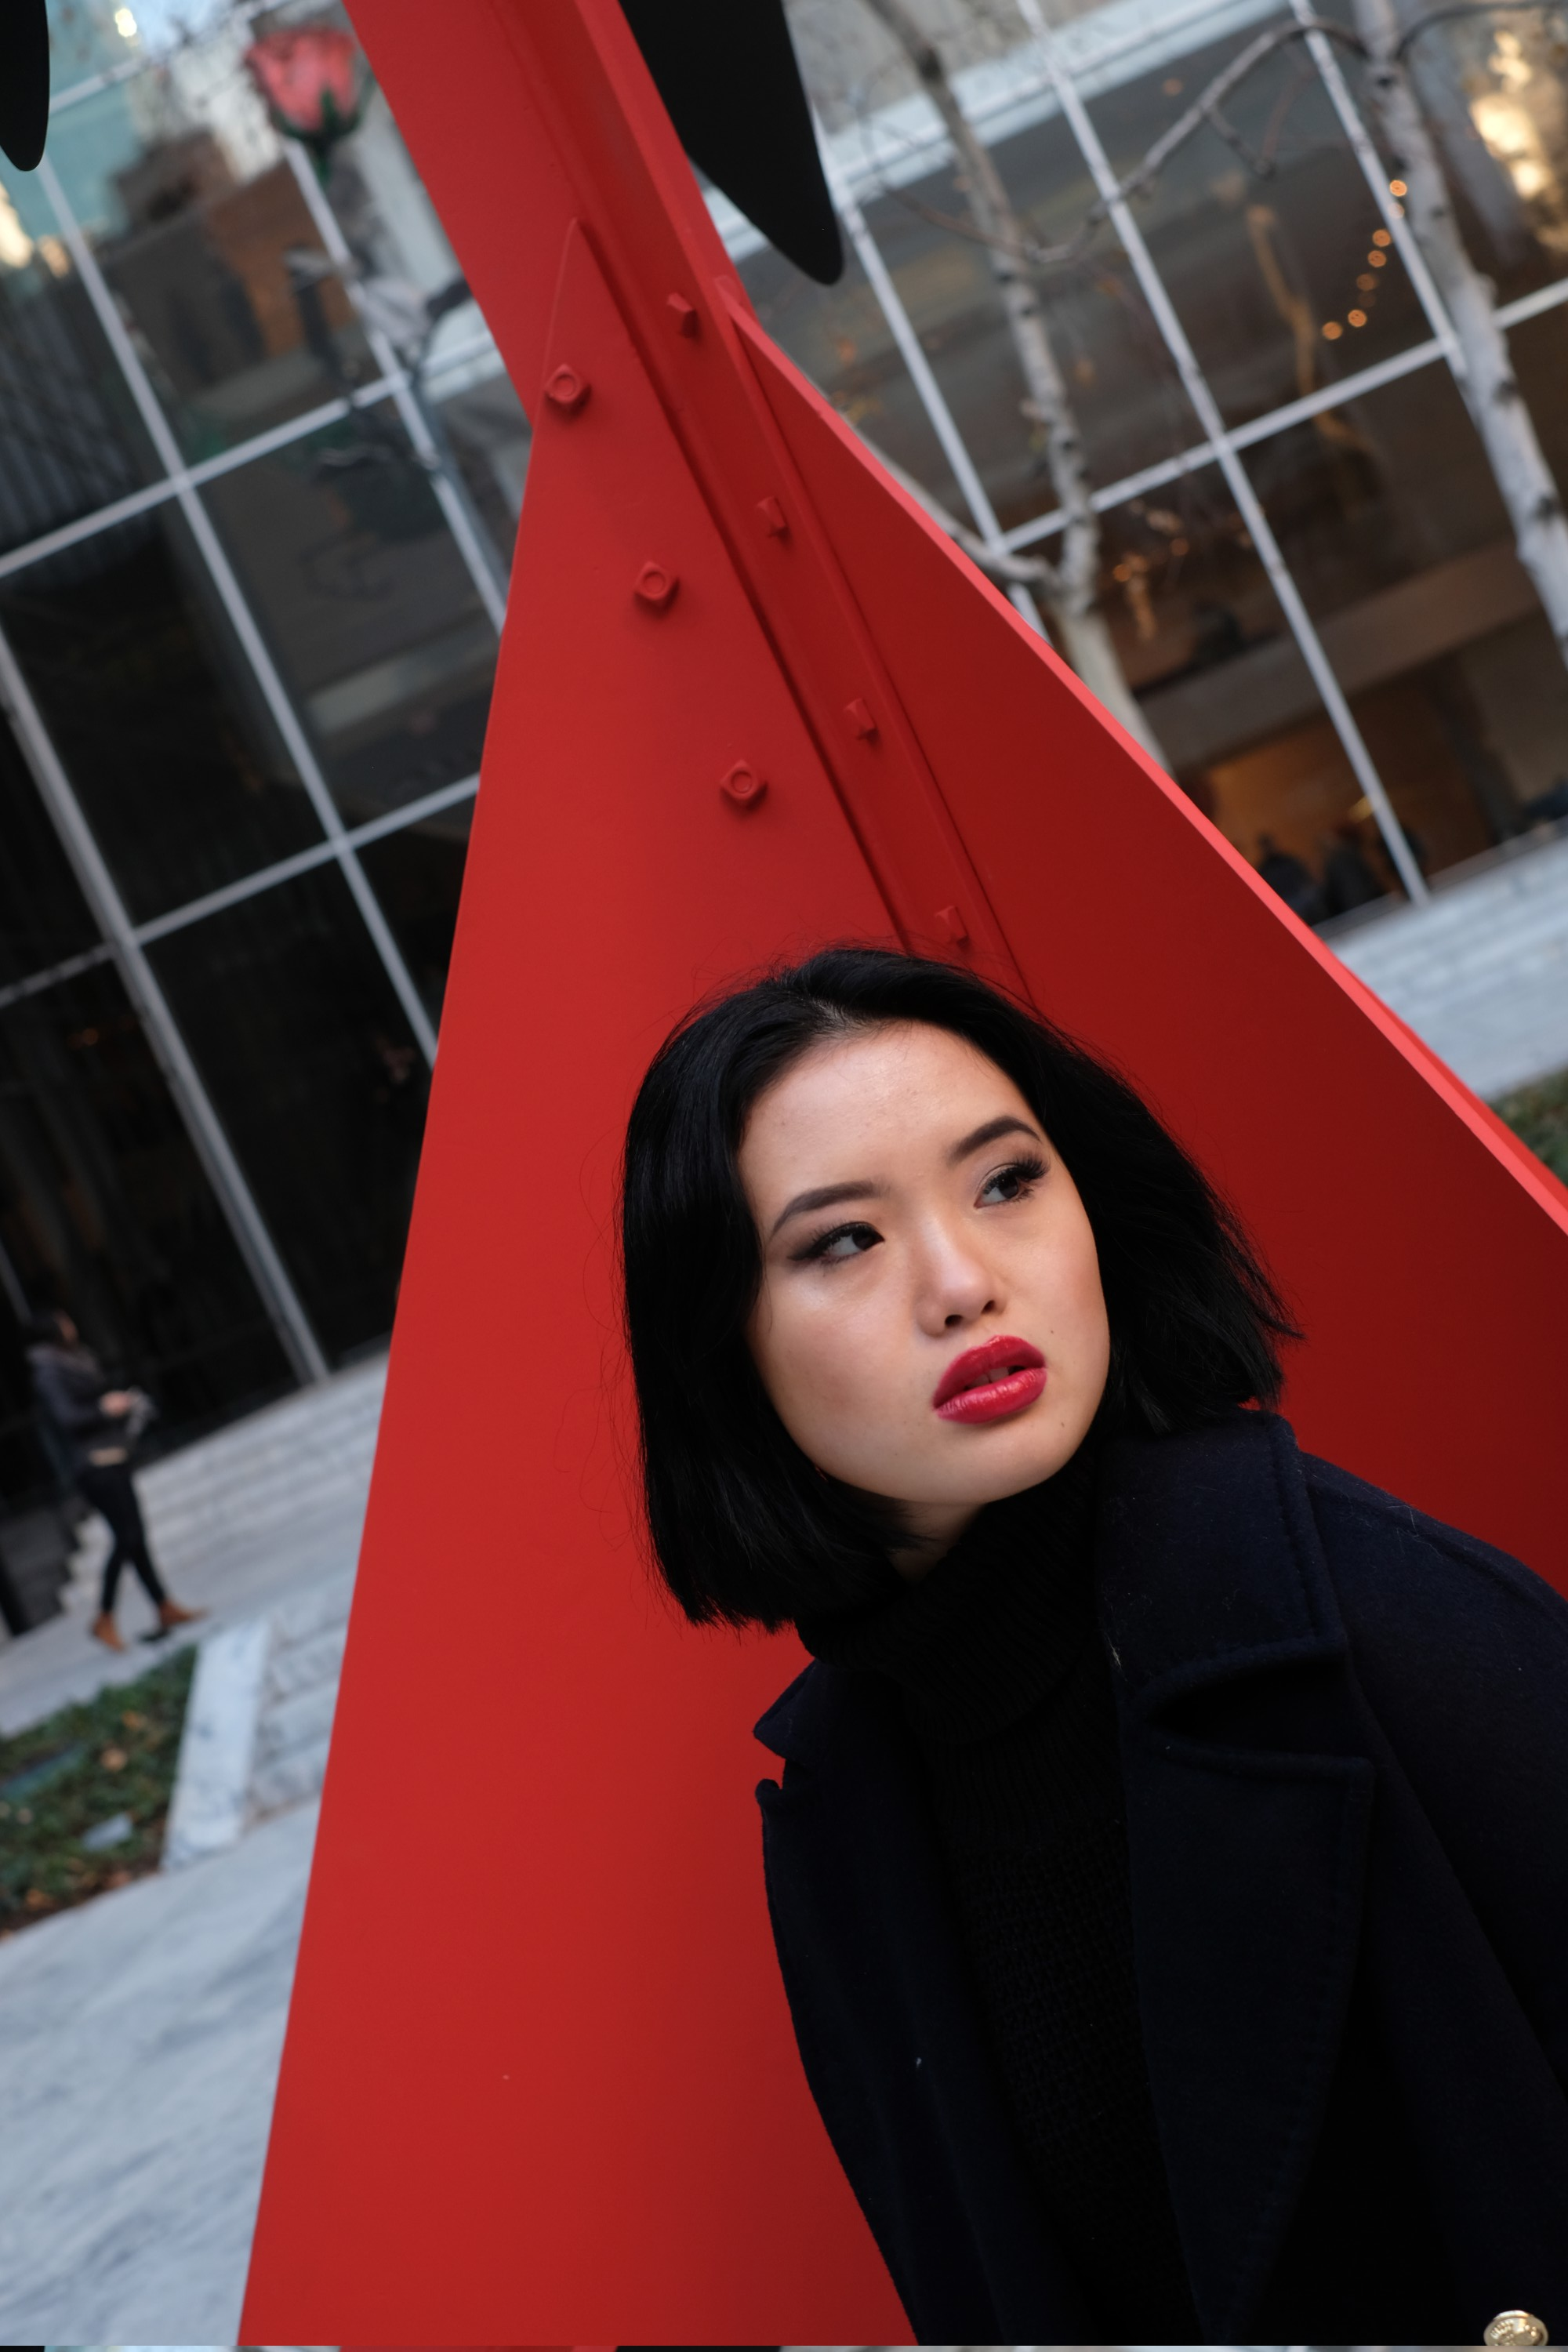 Chinese model by red Calder sculpture